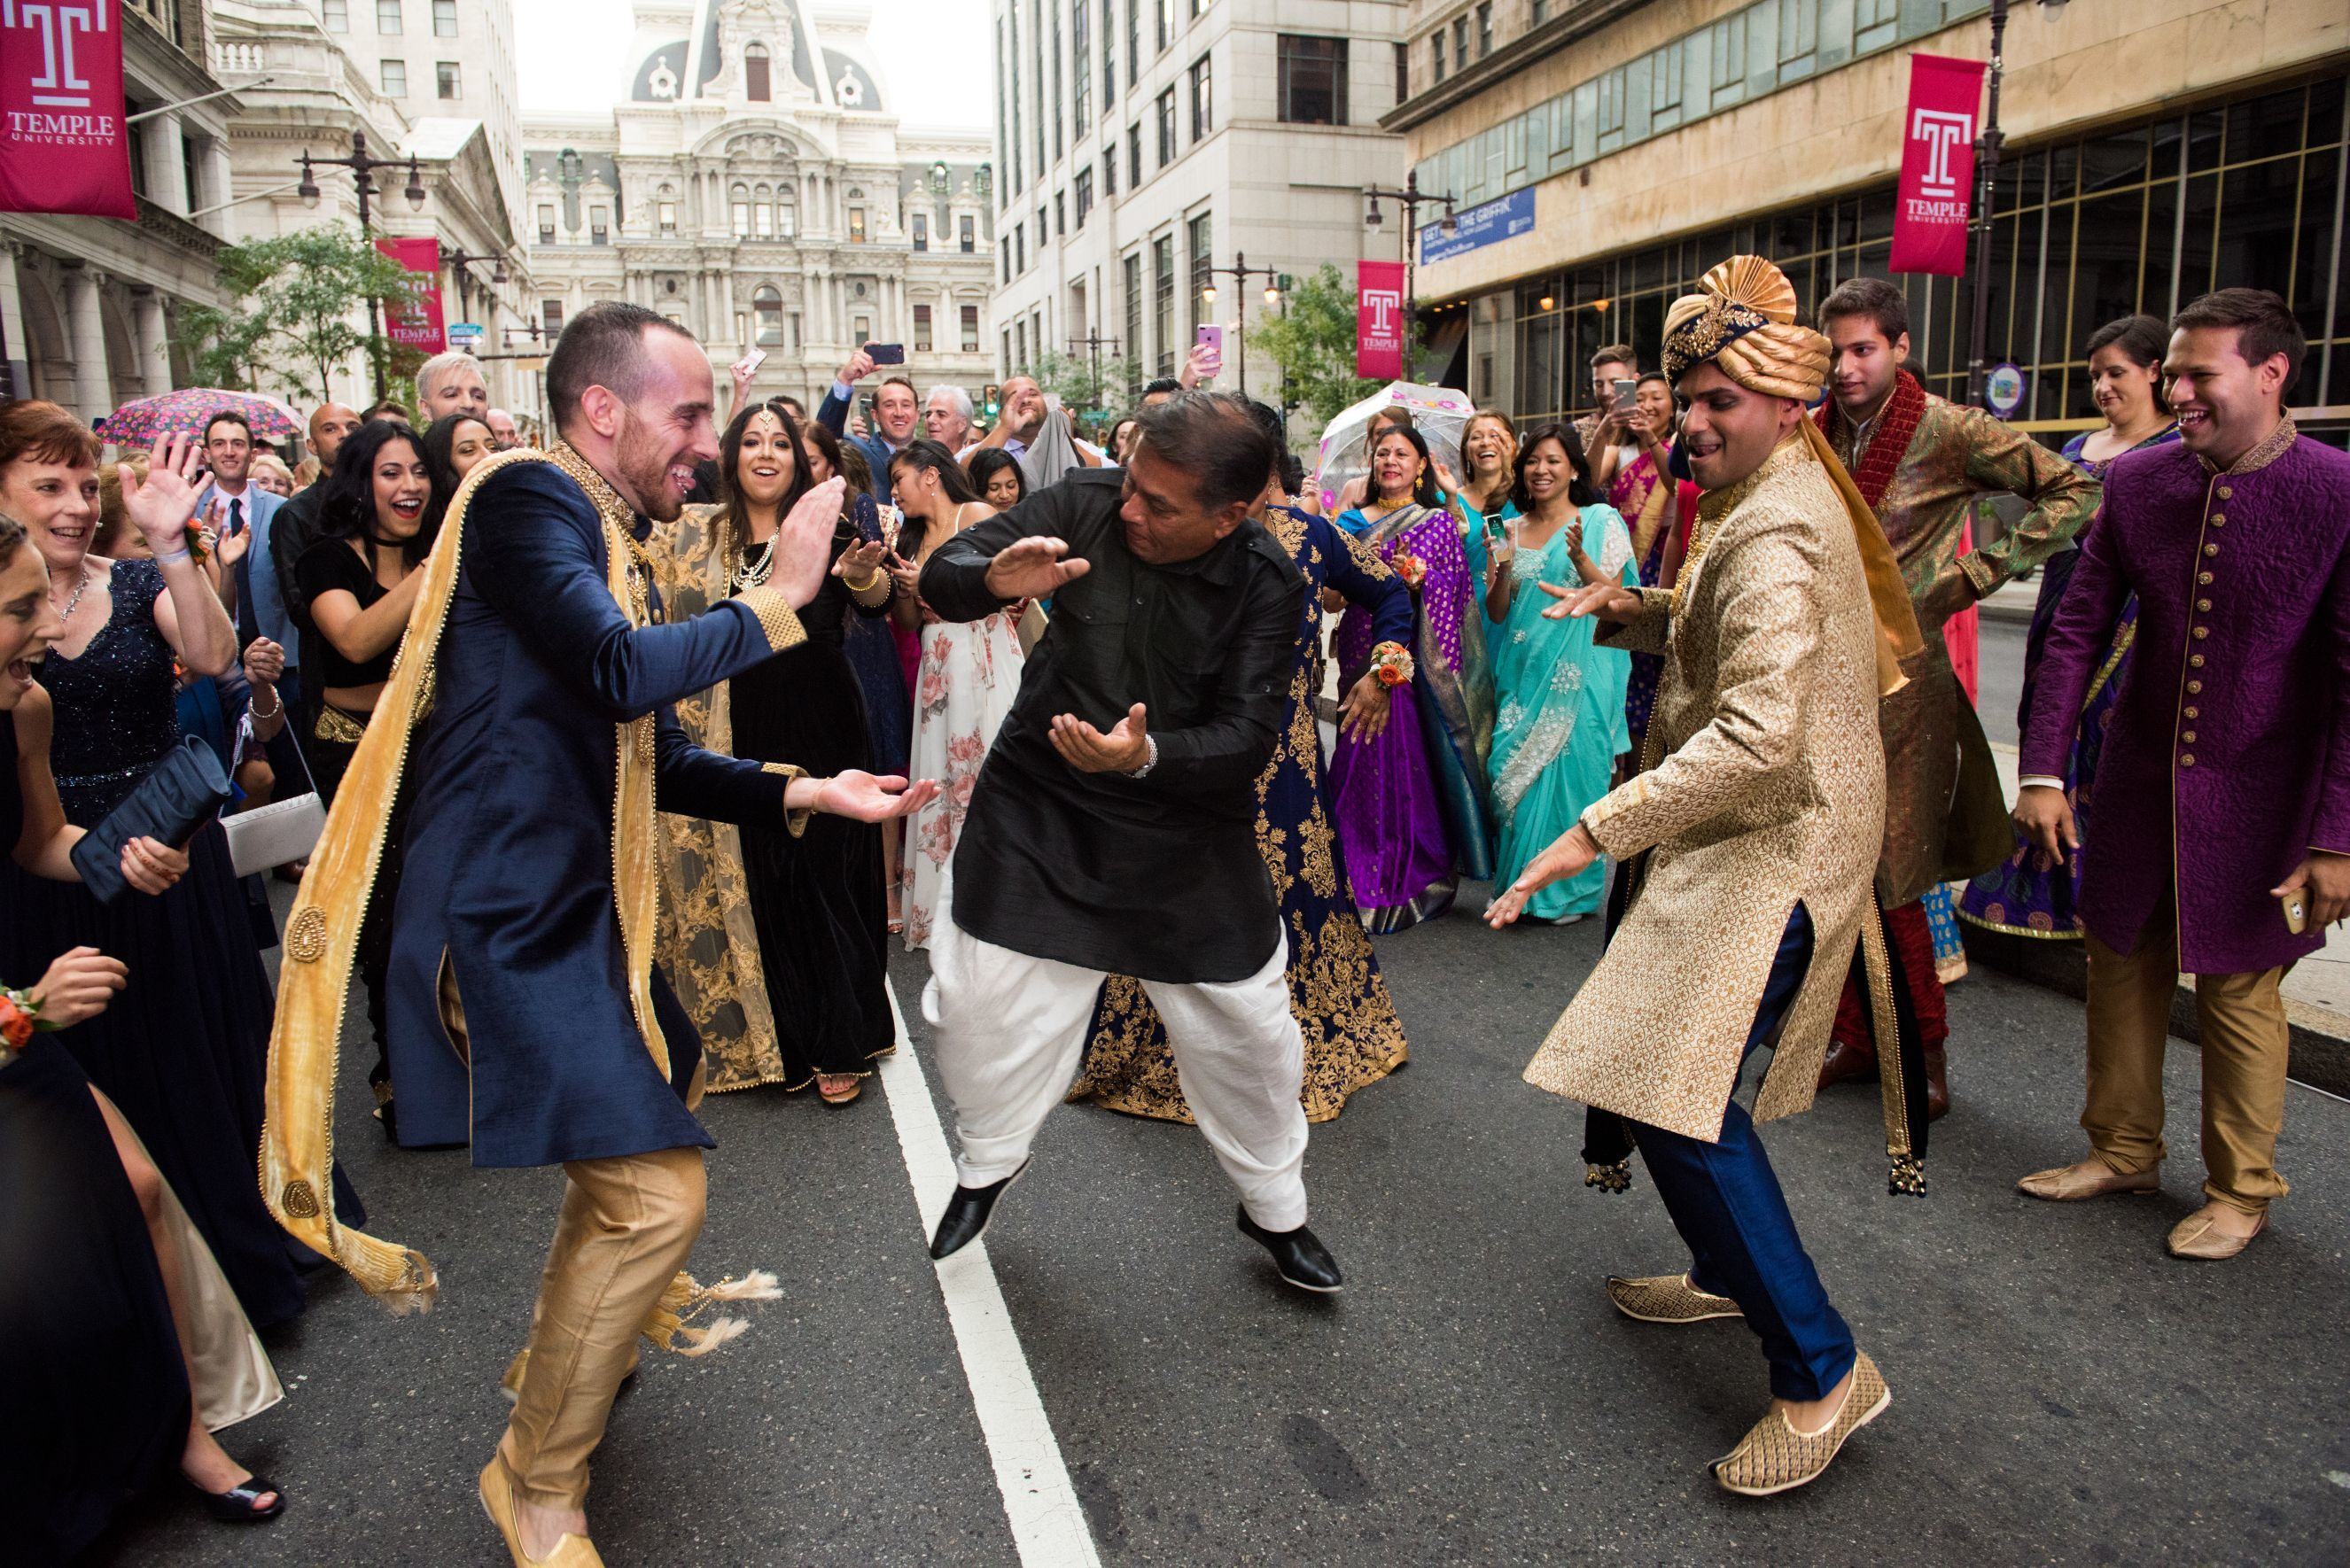 Kyle and Avinash with family and friends, dancing down Broad Street during the baraat ceremony.